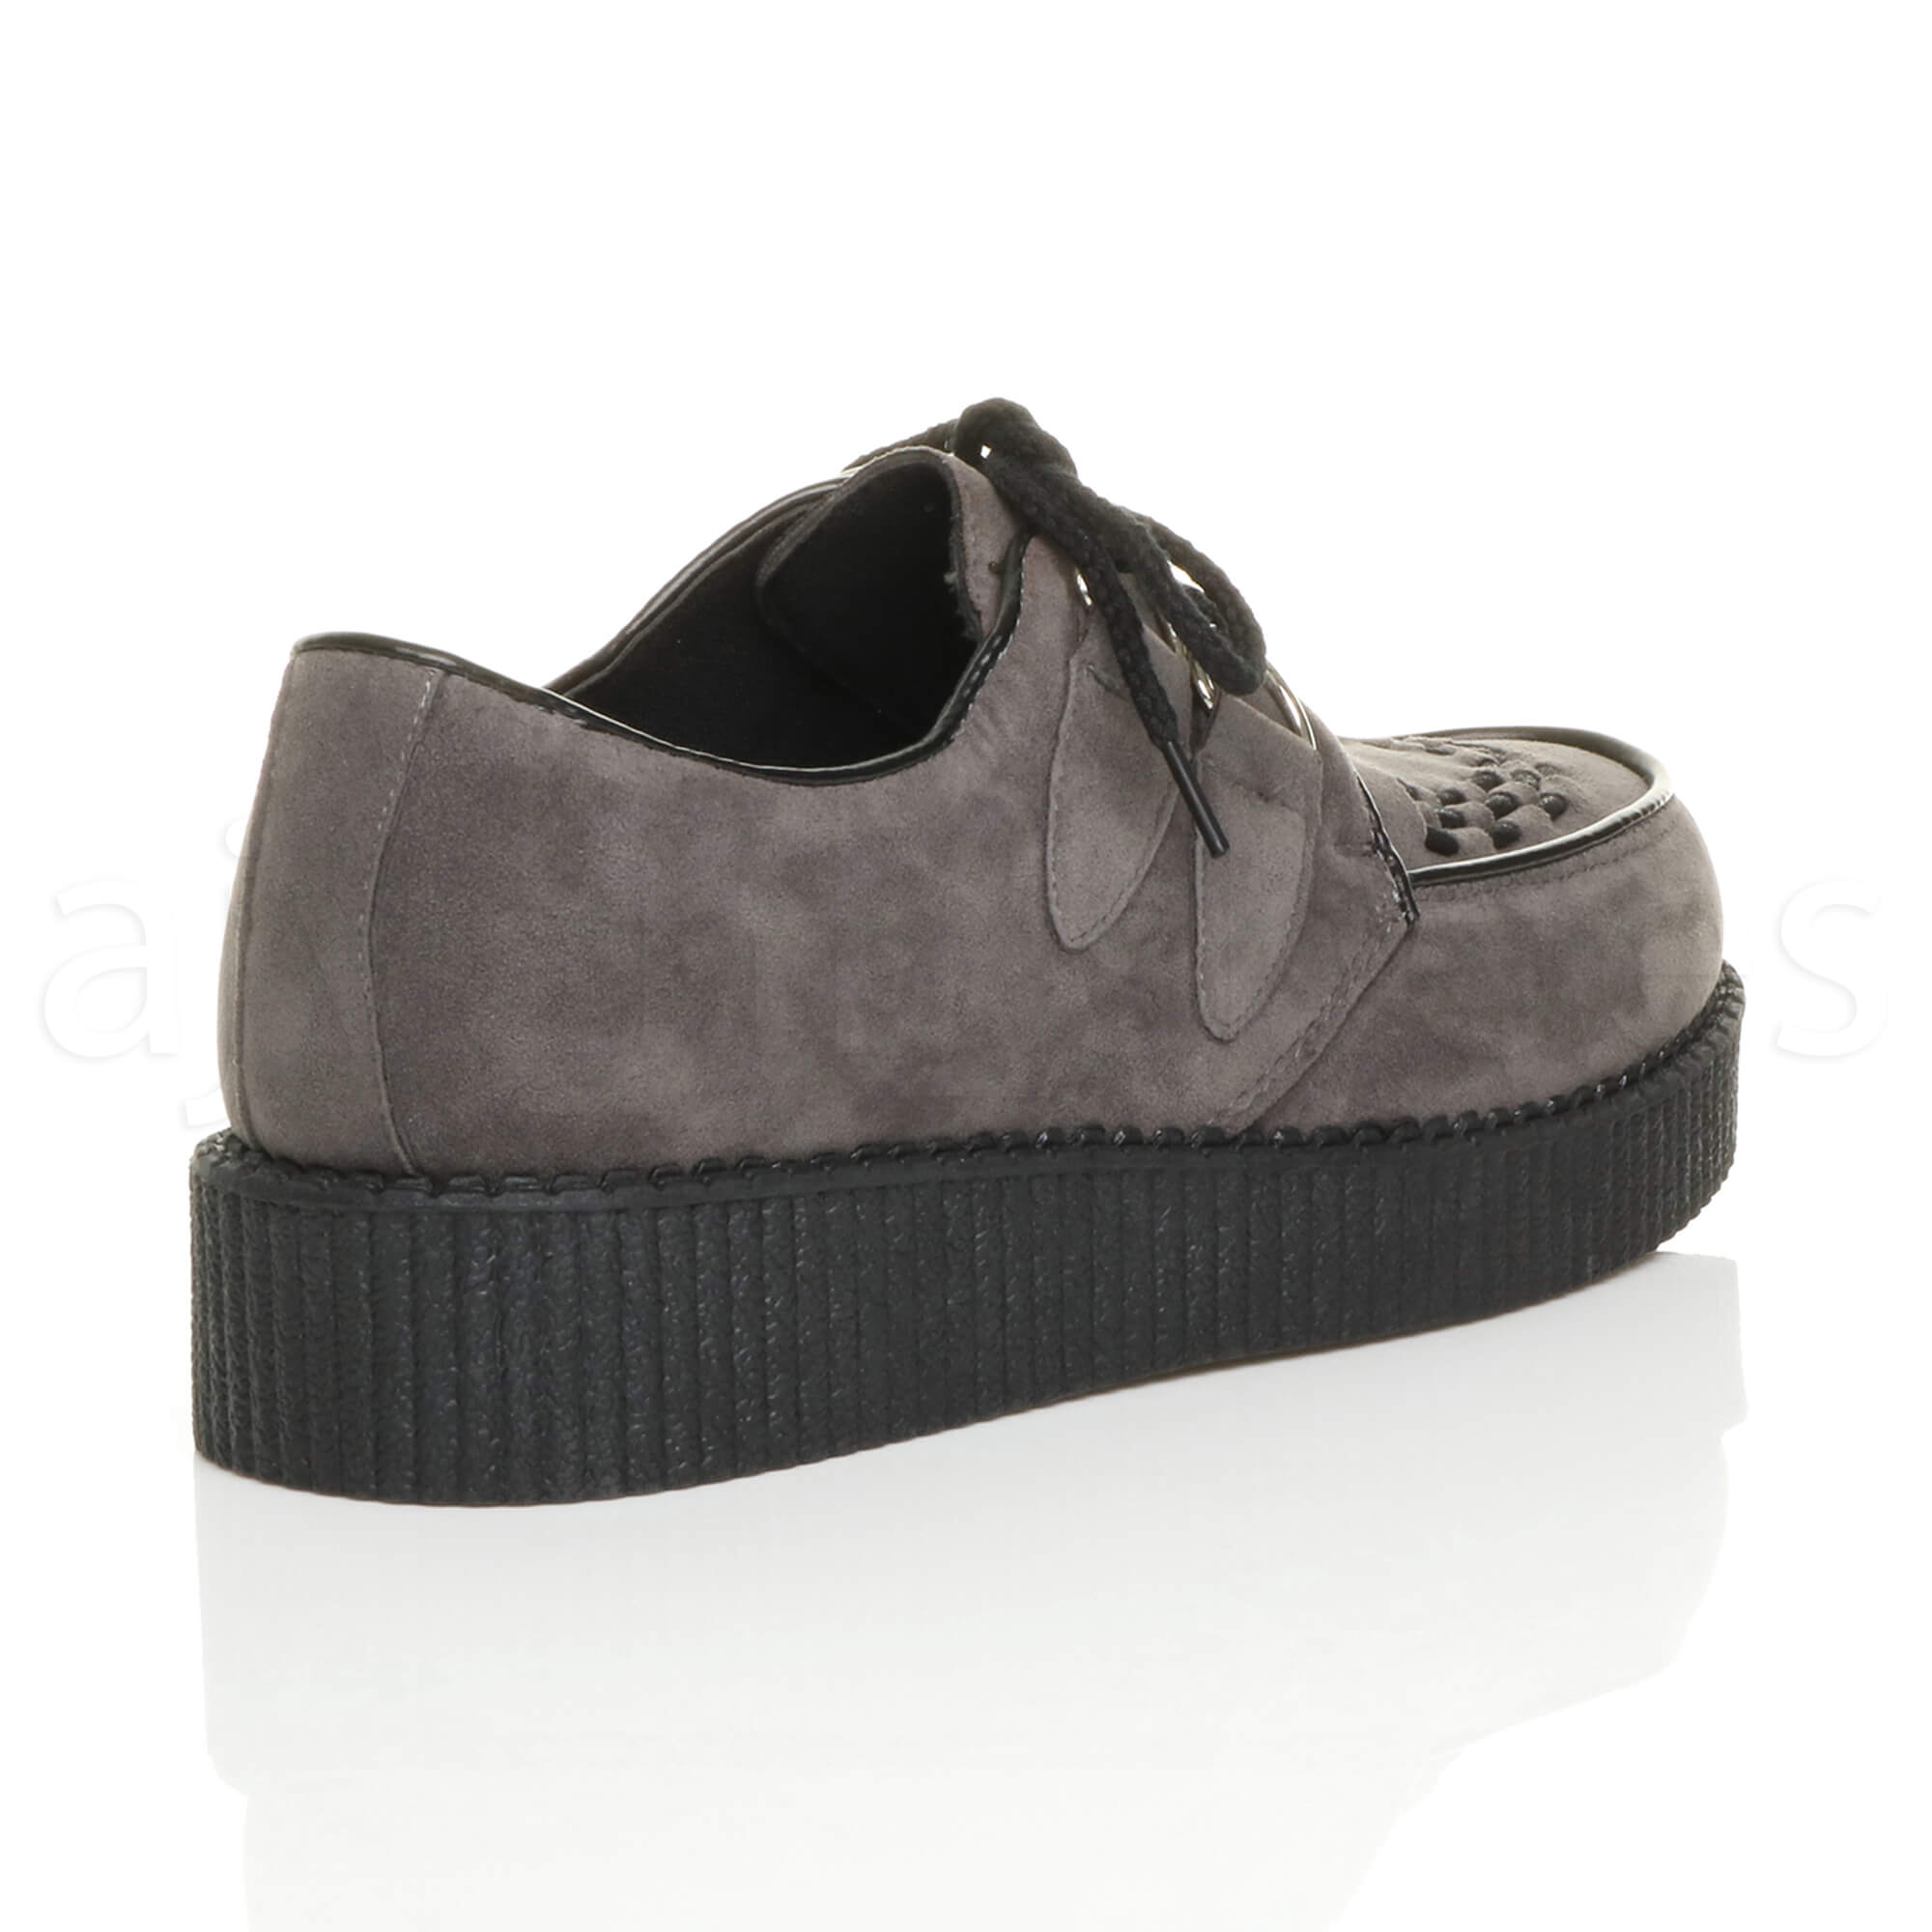 MENS-PLATFORM-WEDGE-LACE-UP-GOTH-PUNK-BROTHEL-CREEPERS-BEETLE-CRUSHERS-SHOES thumbnail 33